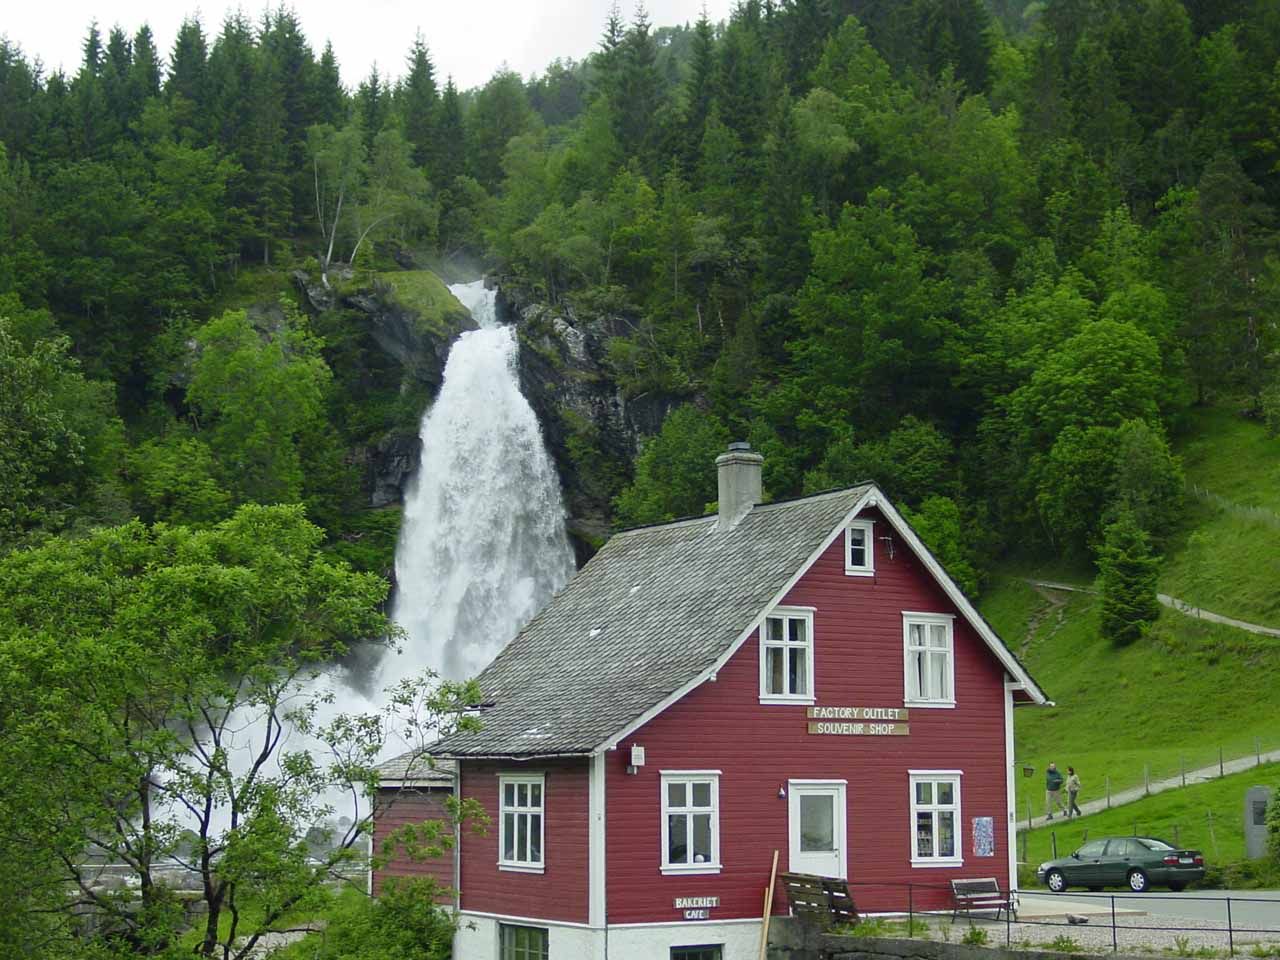 This was our second take on Steinsdalsfossen from the Mv7 as we were headed west towards the E16